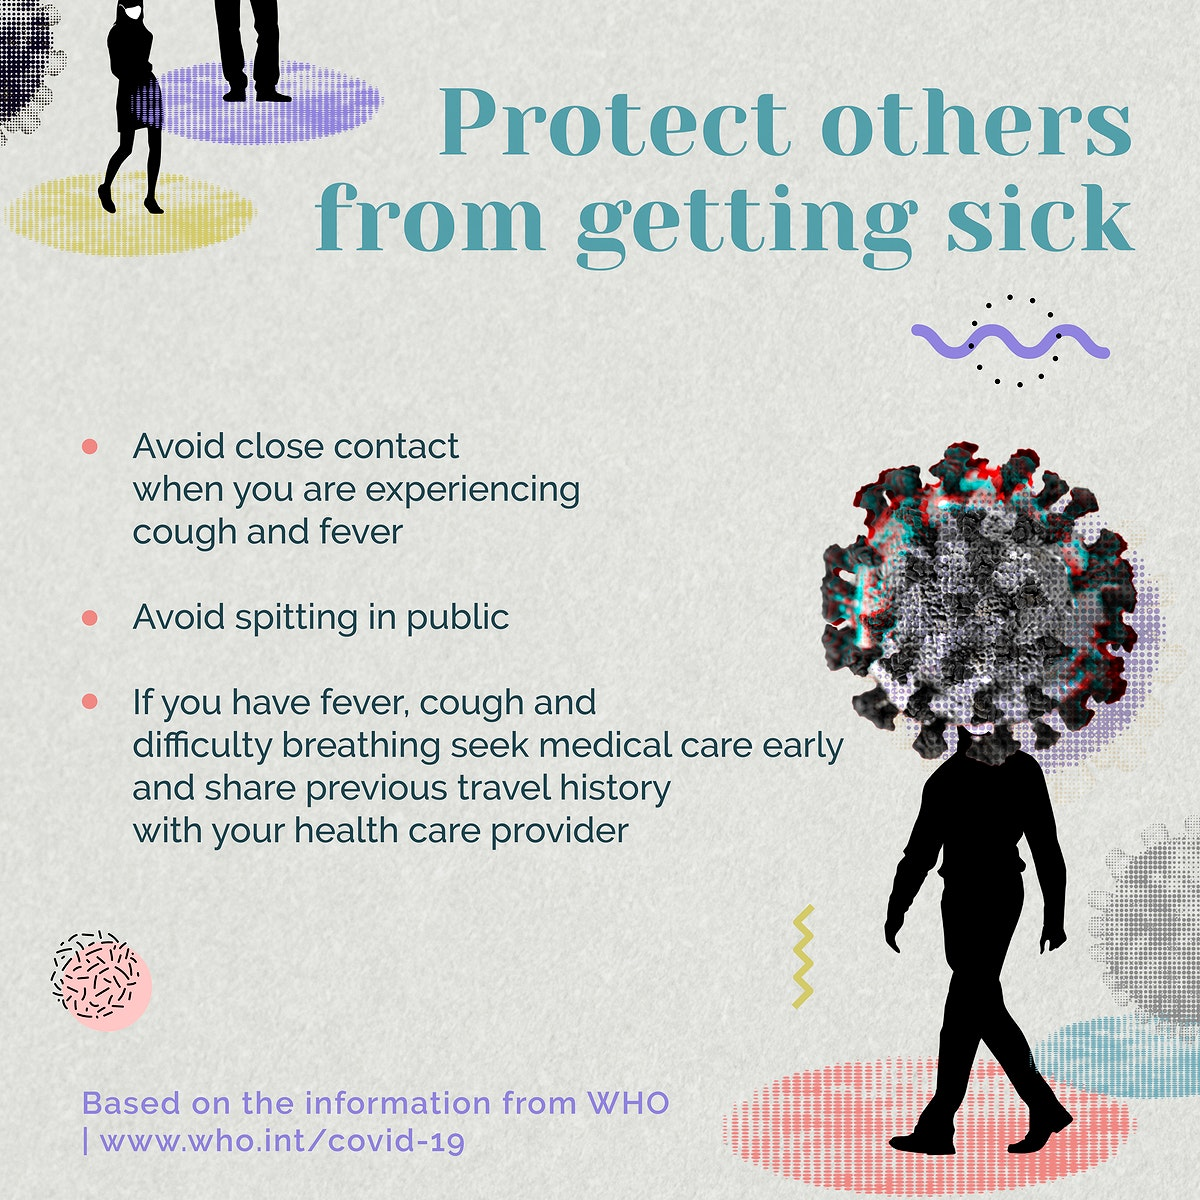 Protect other from getting sick during COVID-19 pandemic advice by WHO vector social ad